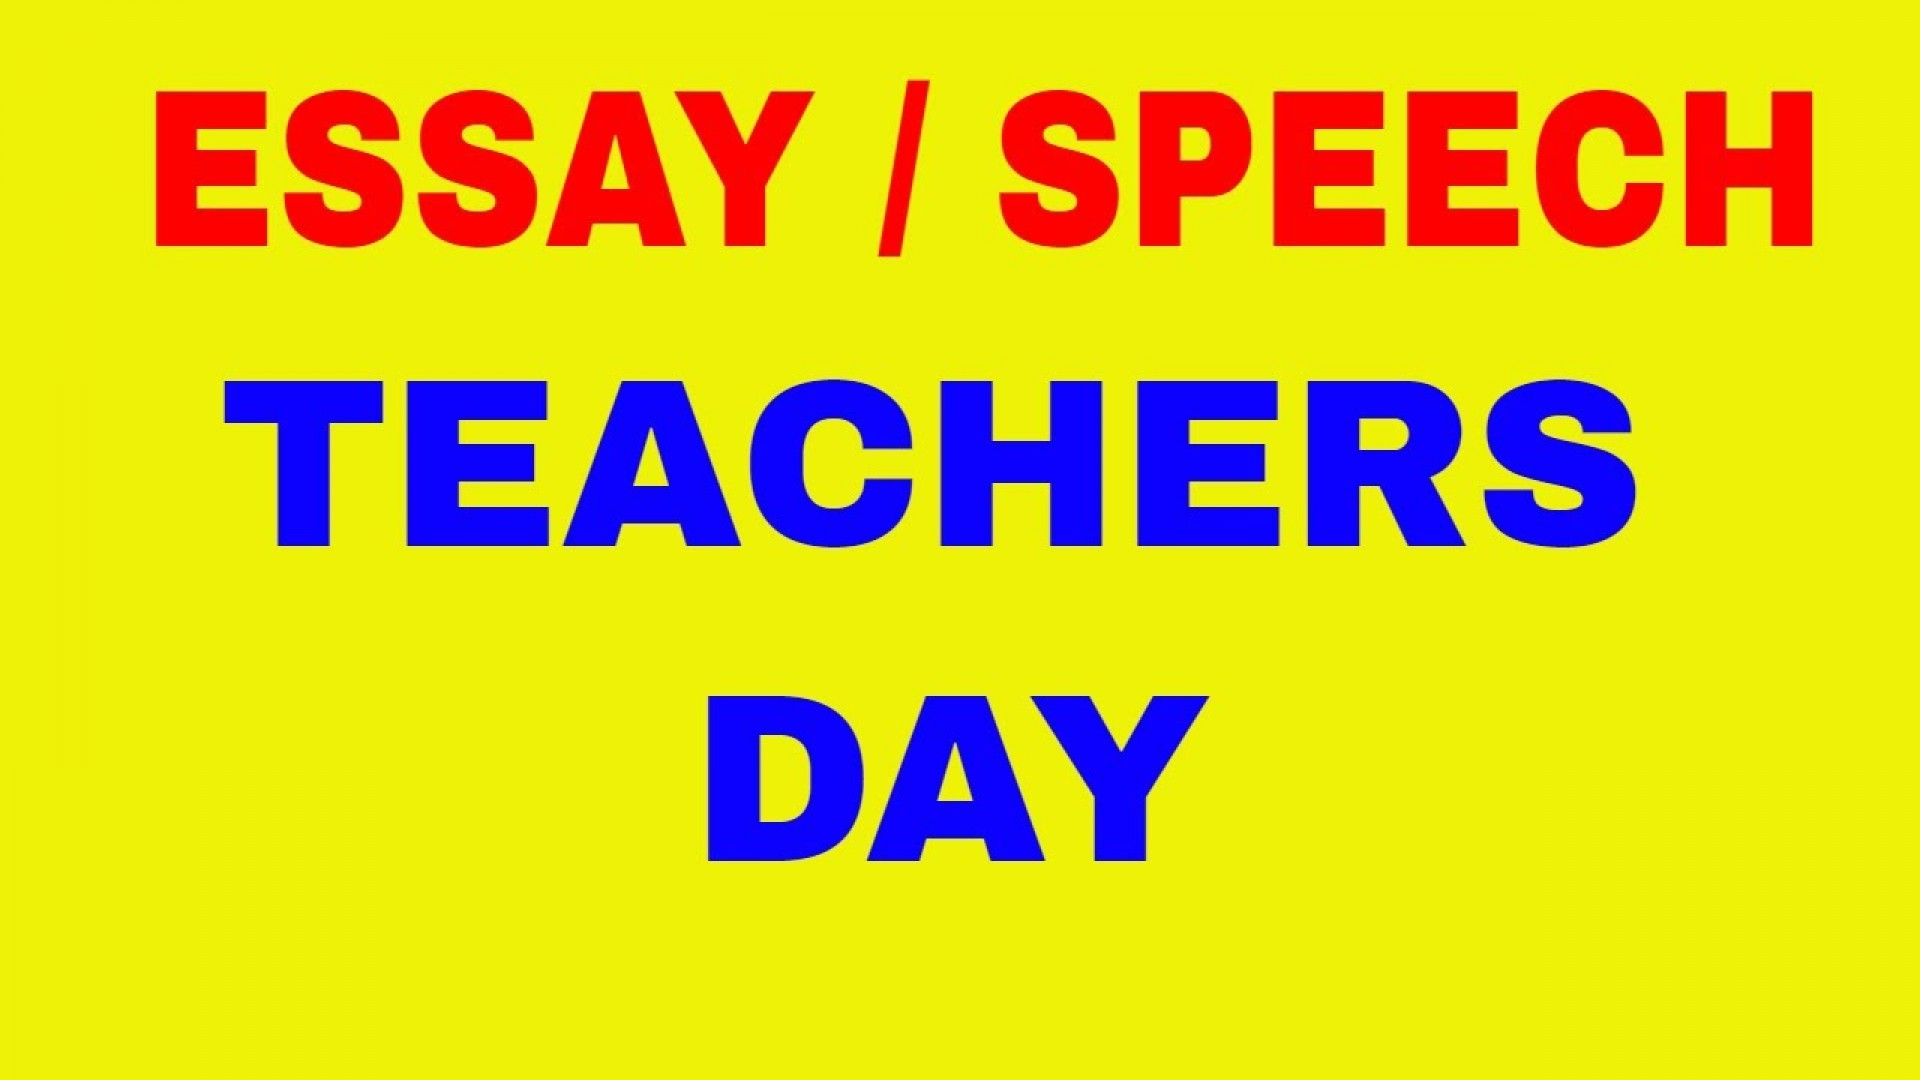 010 Essay On Teachers Day In India Example Fascinating 1920